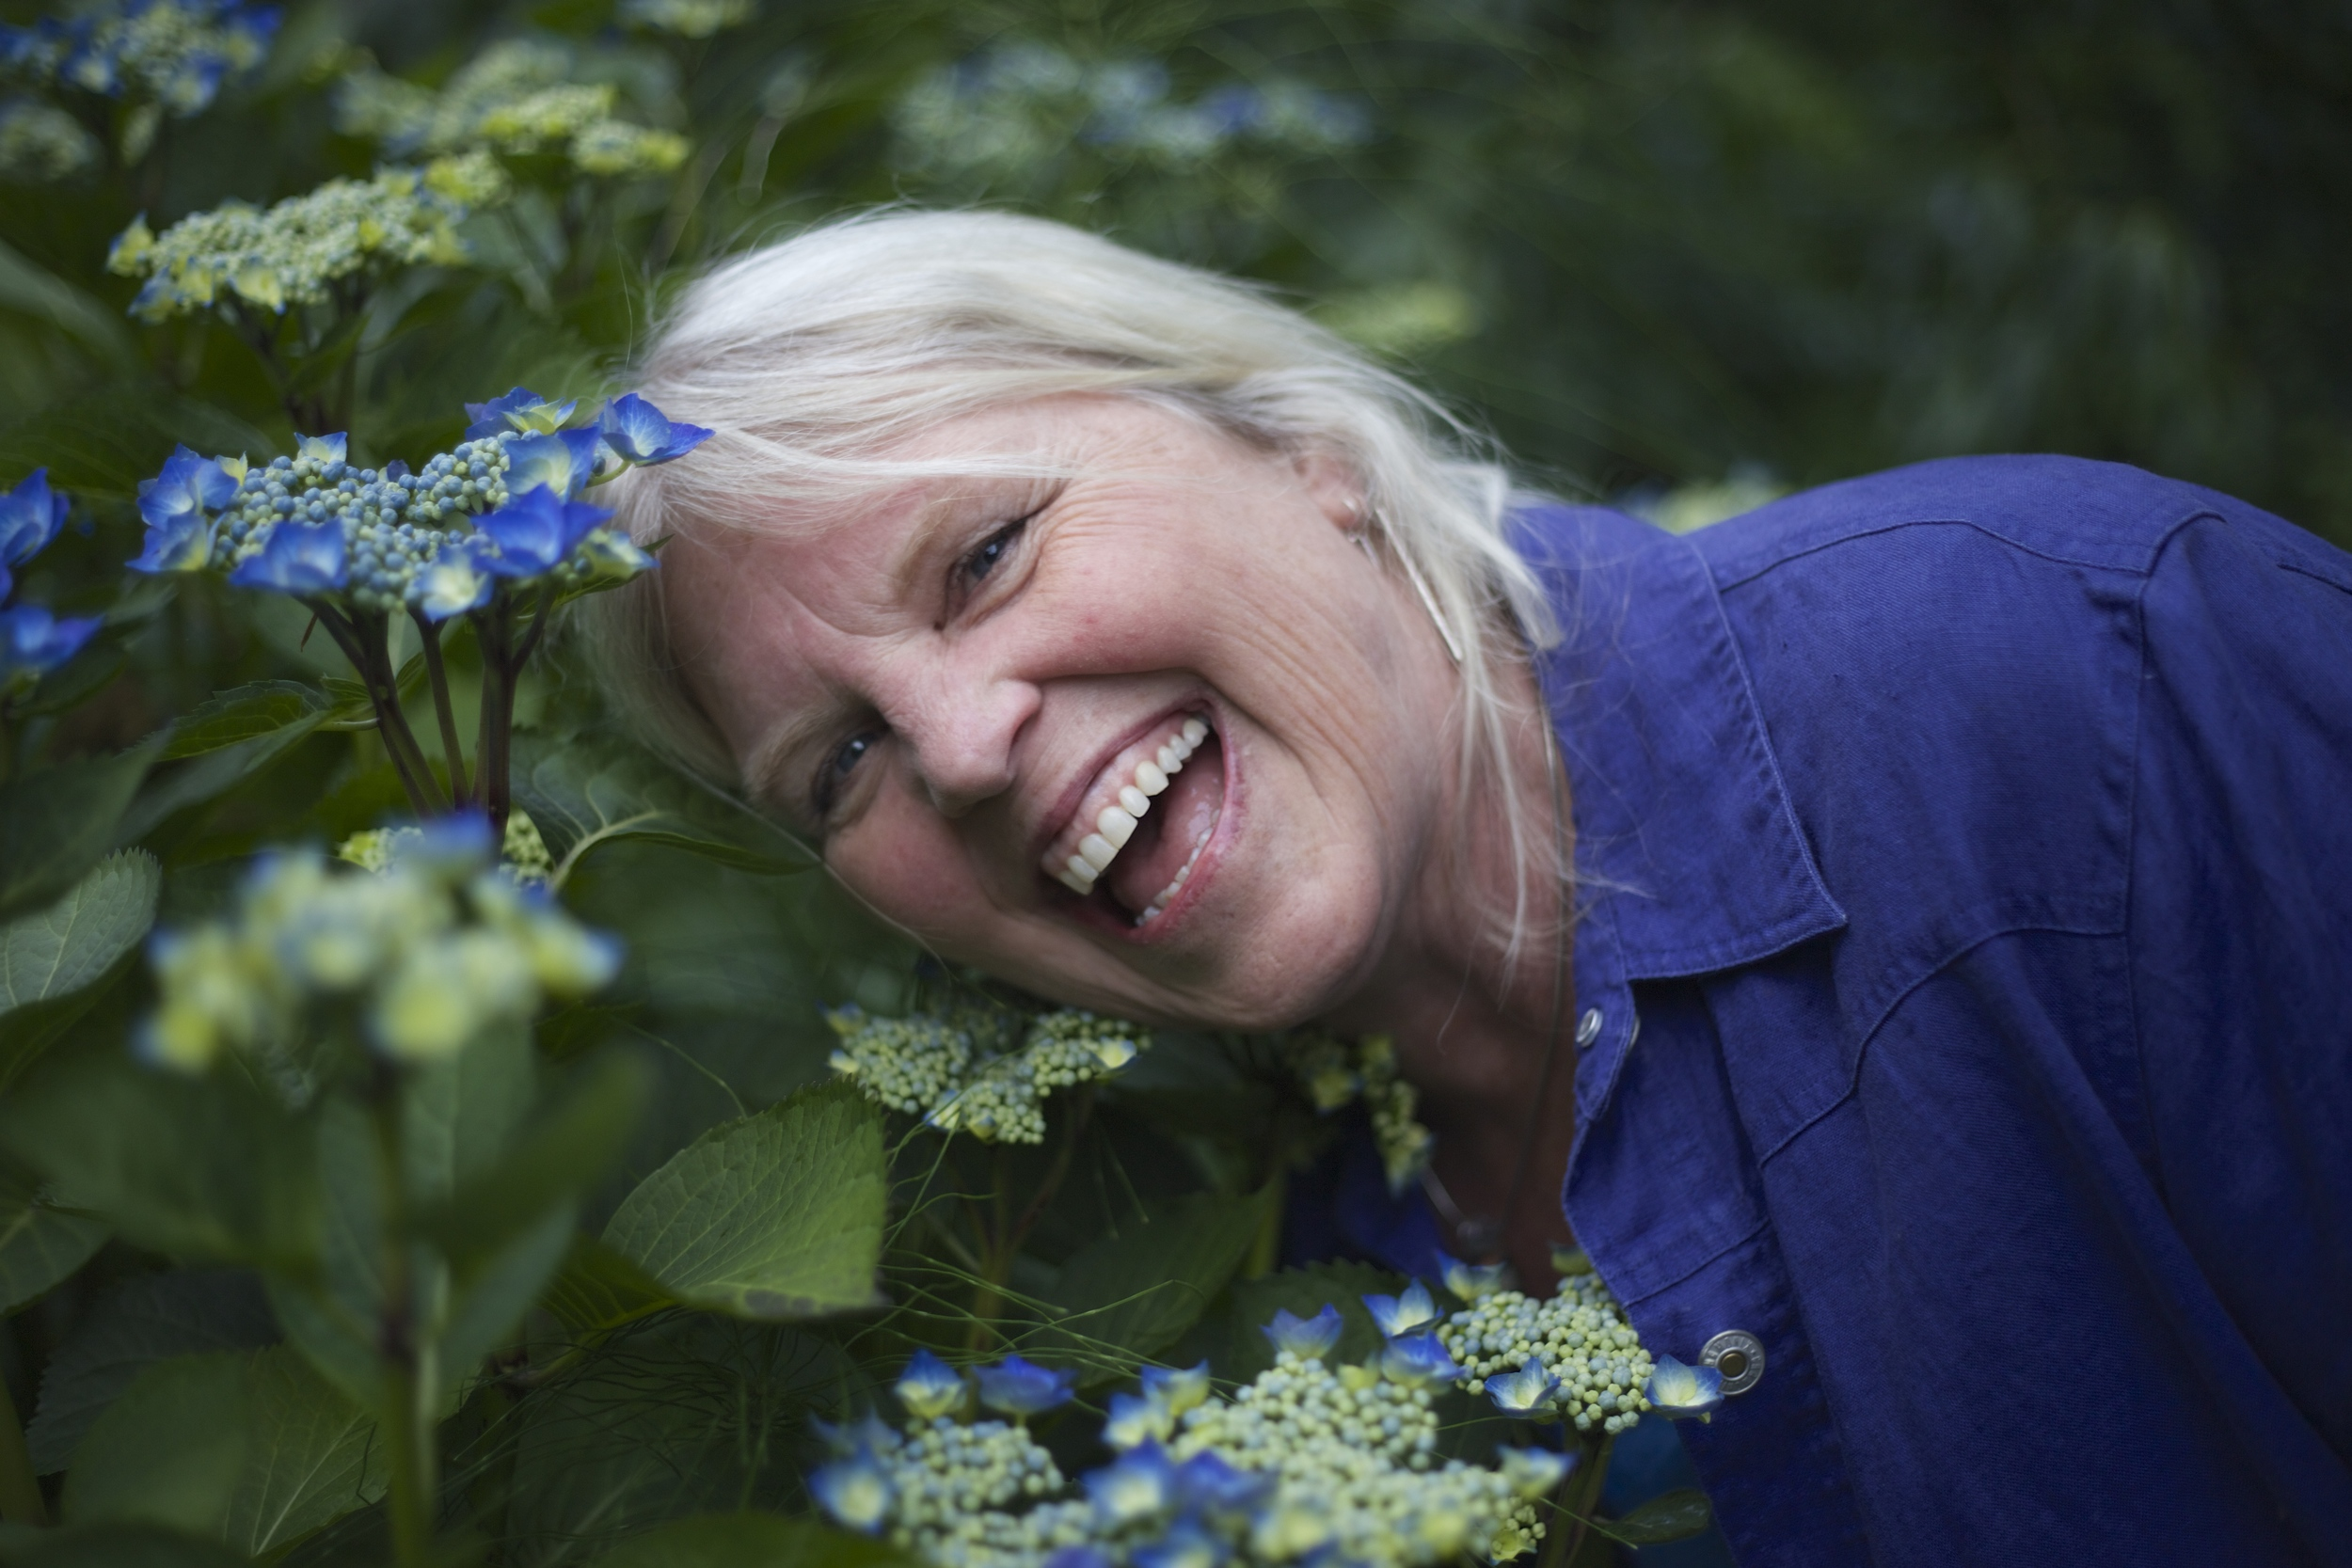 Jack's sister, Jeanne. I love the crisp focus, the natural smile, and the colors!